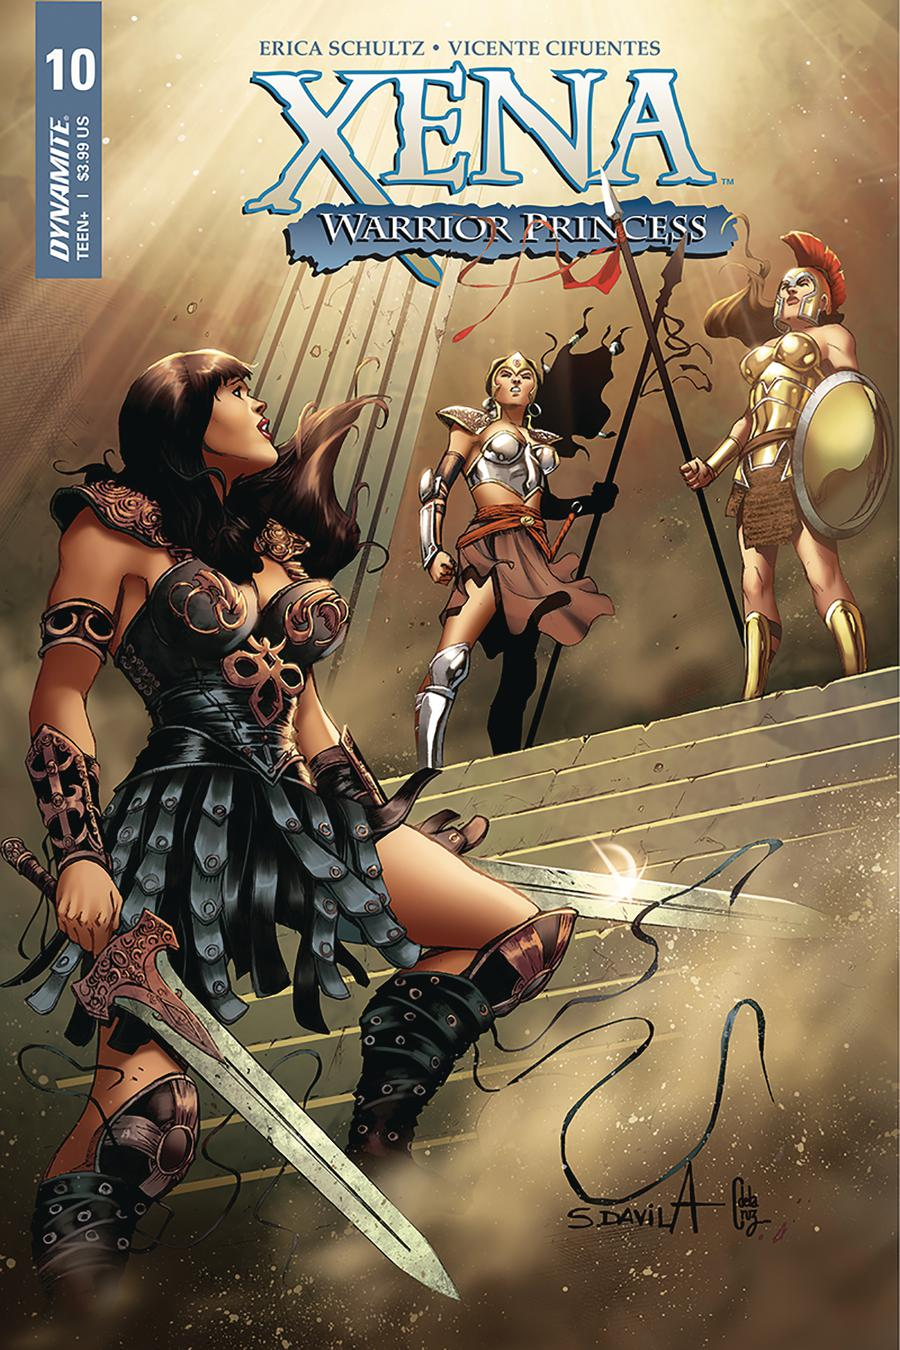 Xena Vol 2 #10 Cover A Regular Sergio Davila Cover